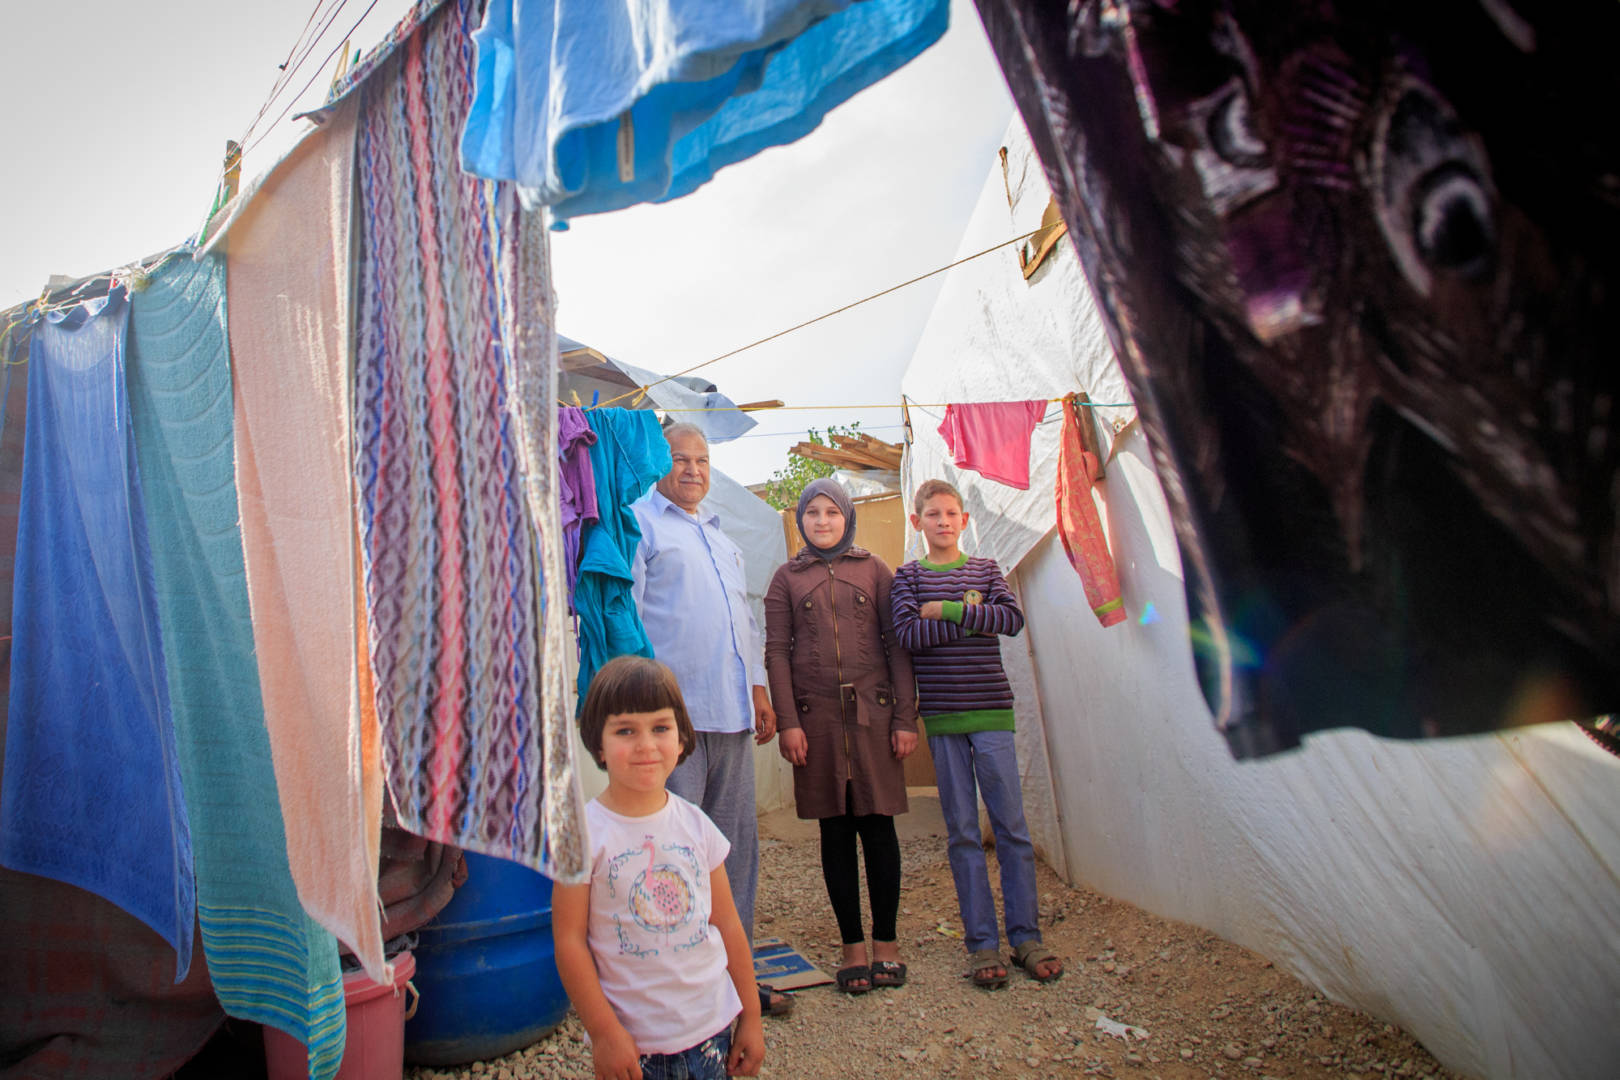 Abrar, 3, front, stands with her siblings Aya and Ammar, 13, and their father, Adnan, 60, amid laundry strung between tents in a settlement for Syrian refugees in the Bekaa Valley, Lebanon. (©2015 World Vision, Chris Huber)